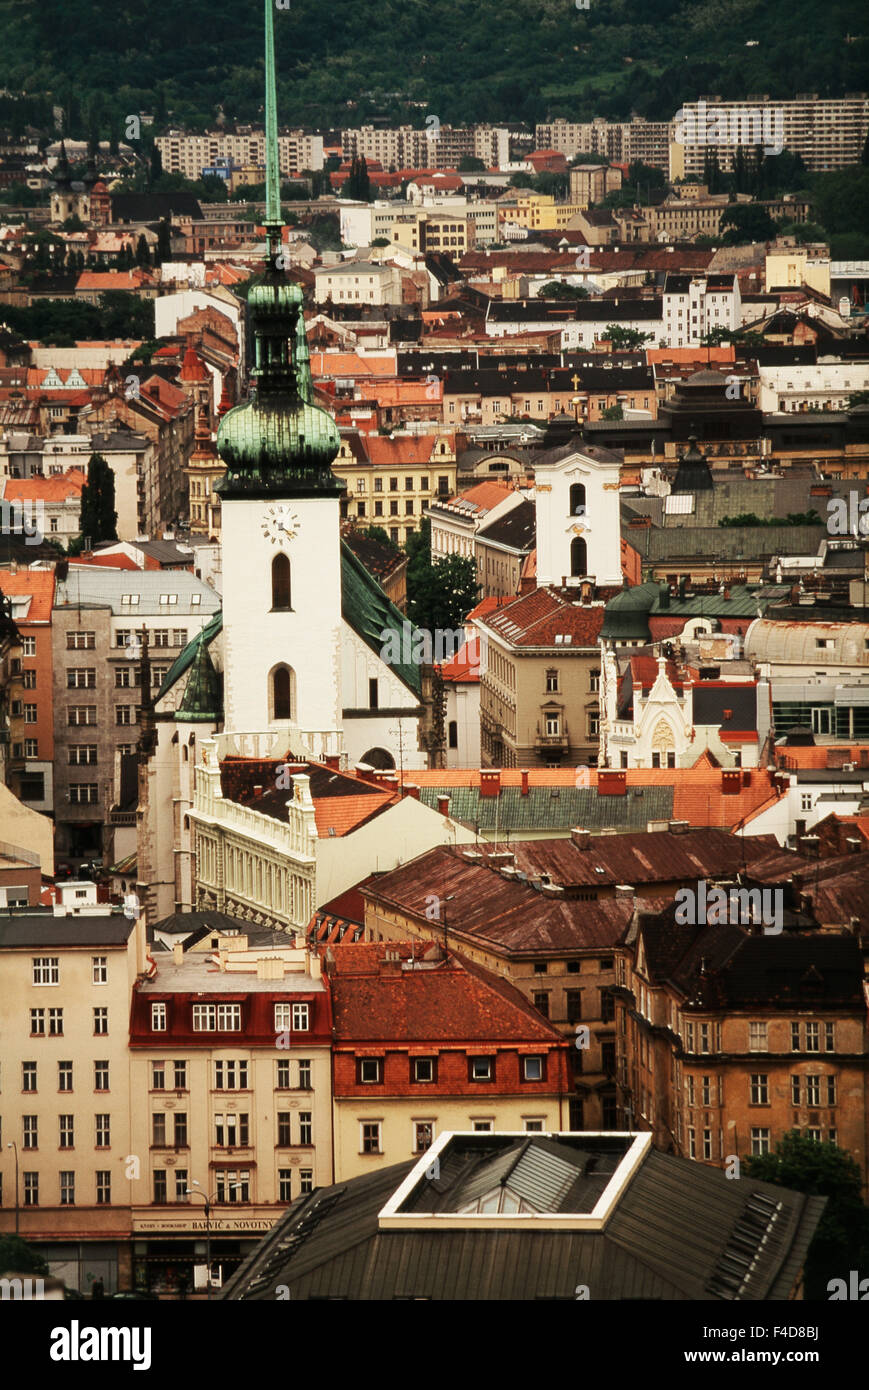 Czech Republic, South Moravian Region. town and church of St. James from Spilberk Castle. (Large format sizes available) - Stock Image